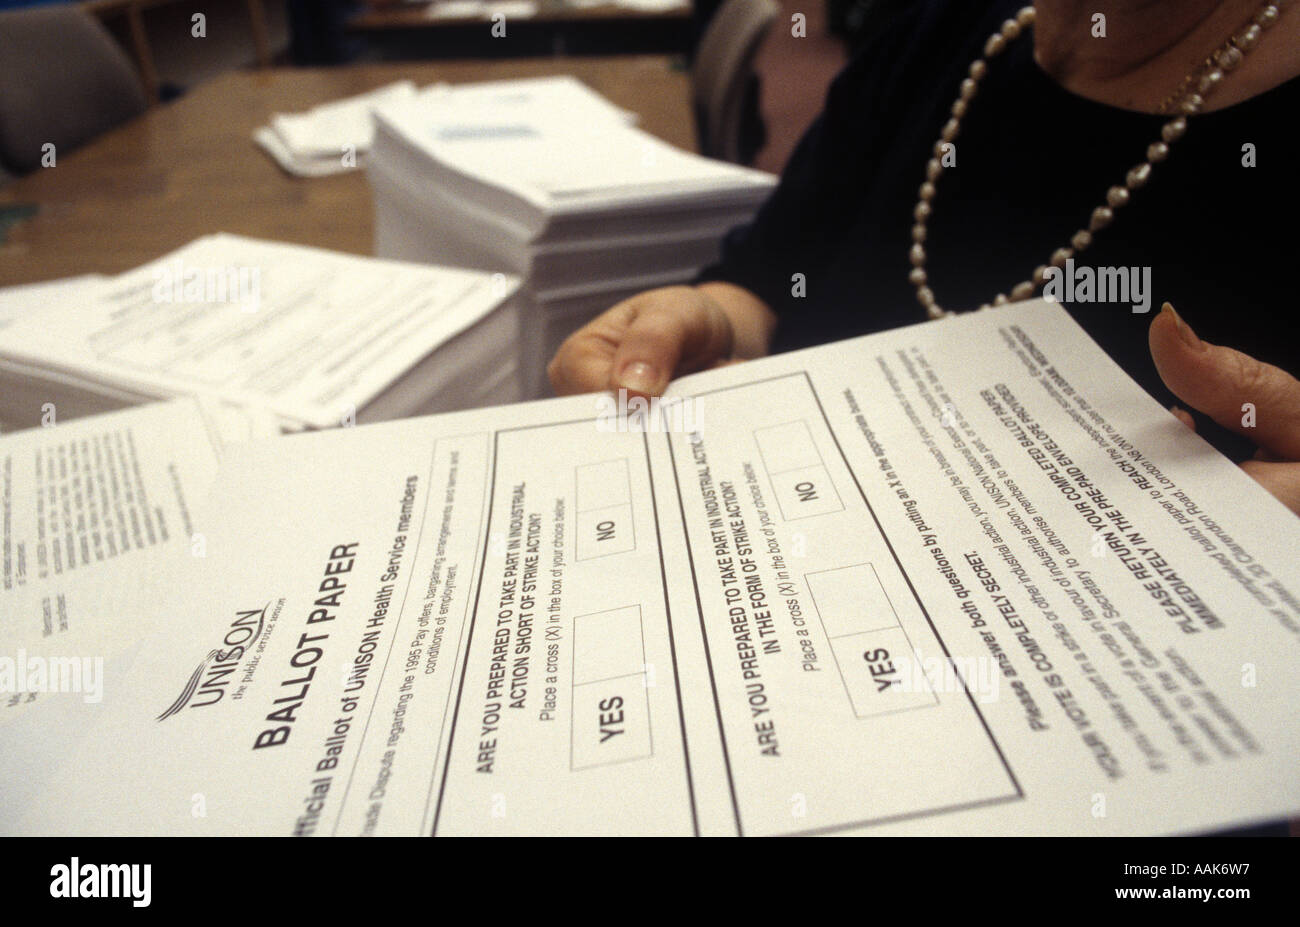 A woman prepares ballot papers for voting on Industrial action by members of the trade union UNISON, London, UK. - Stock Image